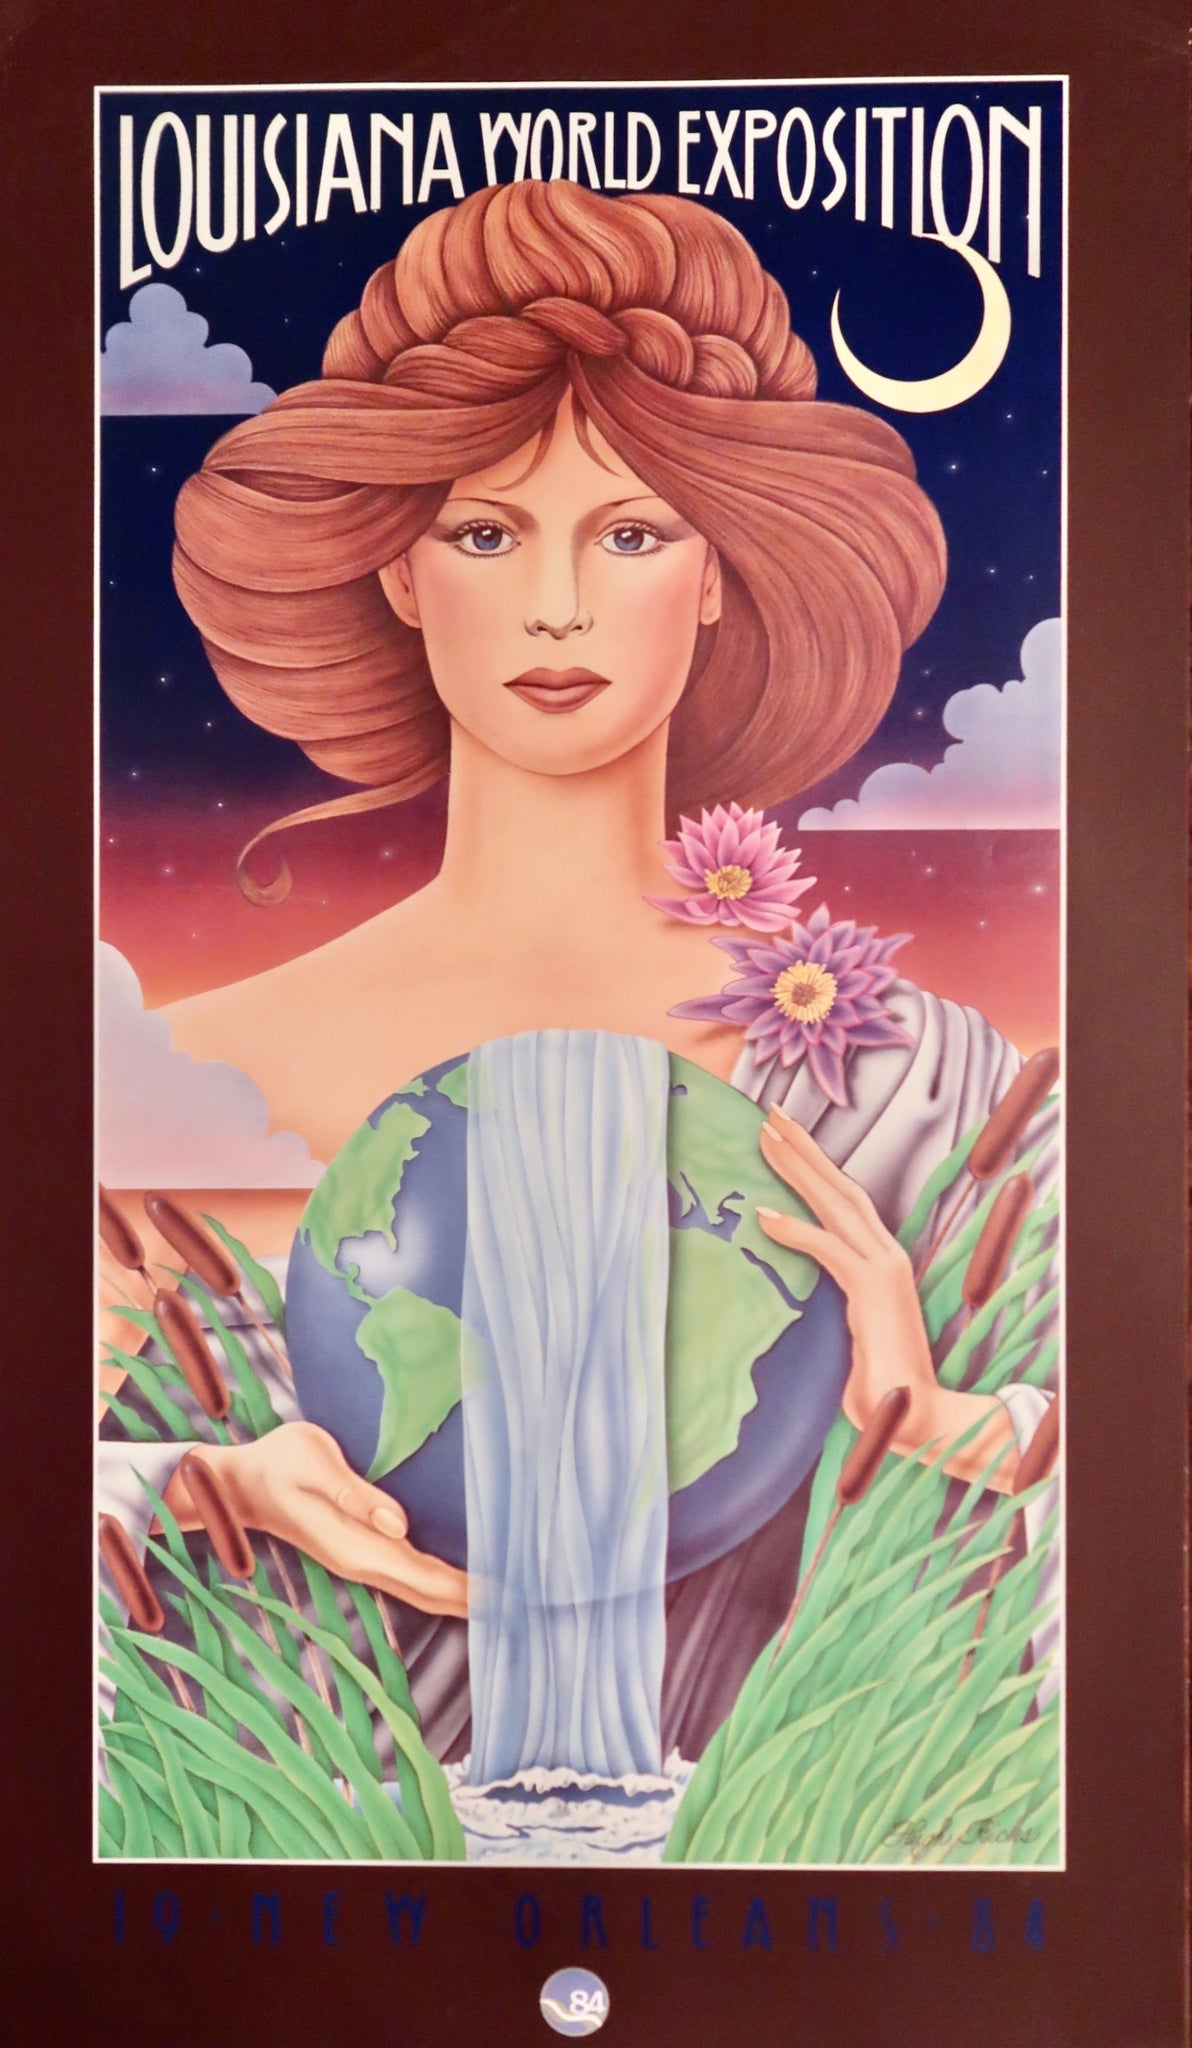 Louisiana World Expo Poster by Hugh Ricks